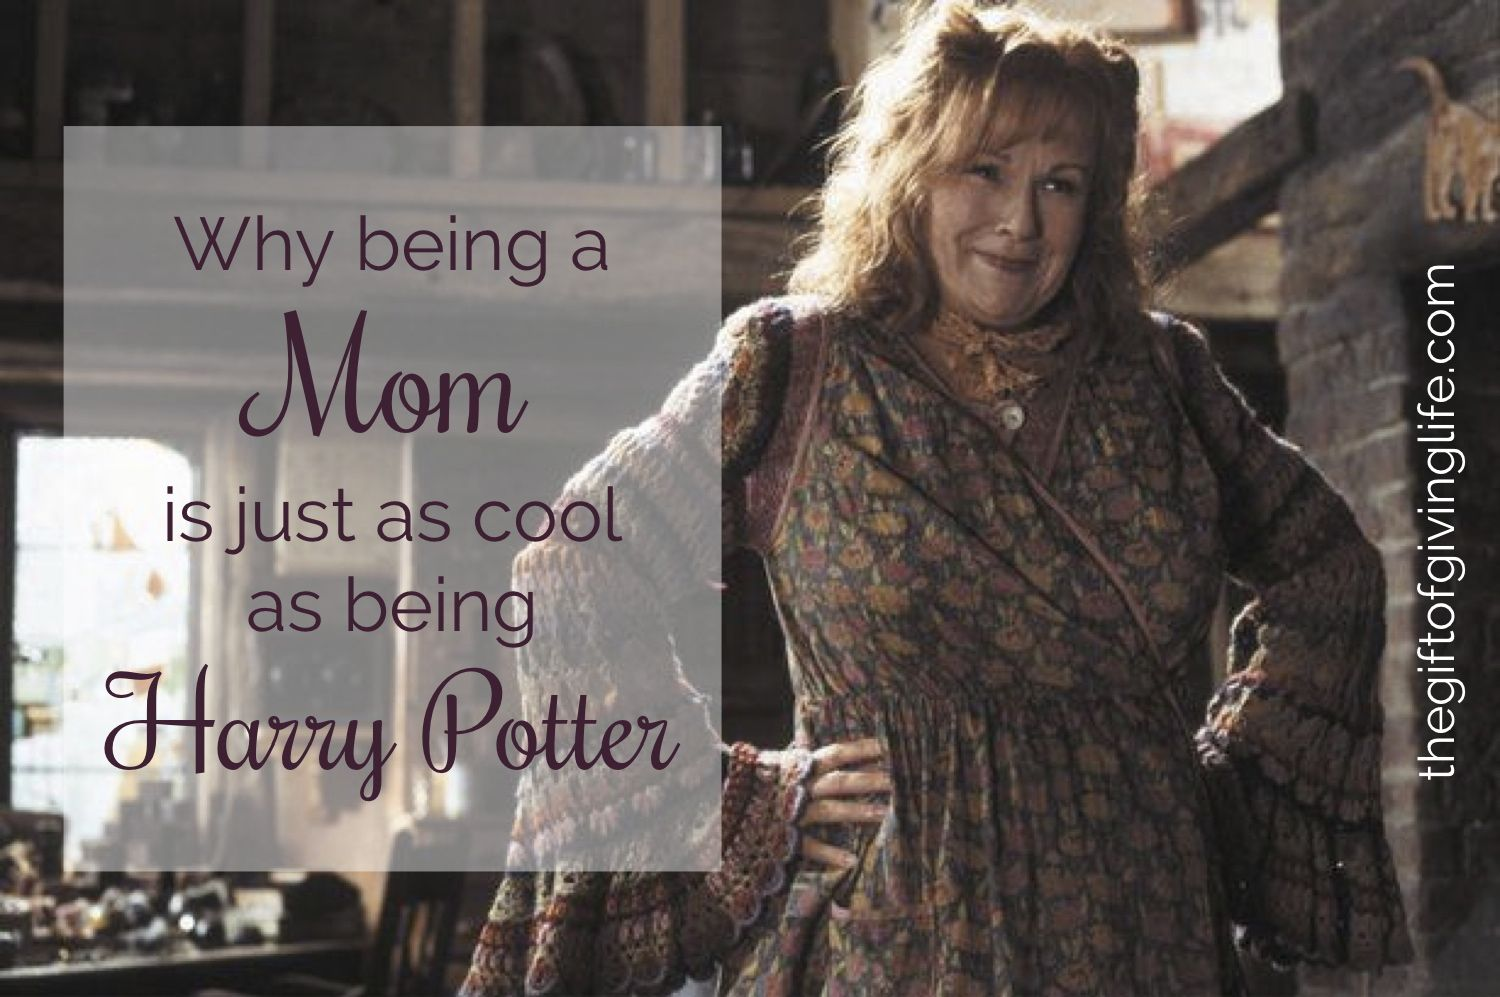 Why being a mom is just as cool as being Harry Potter